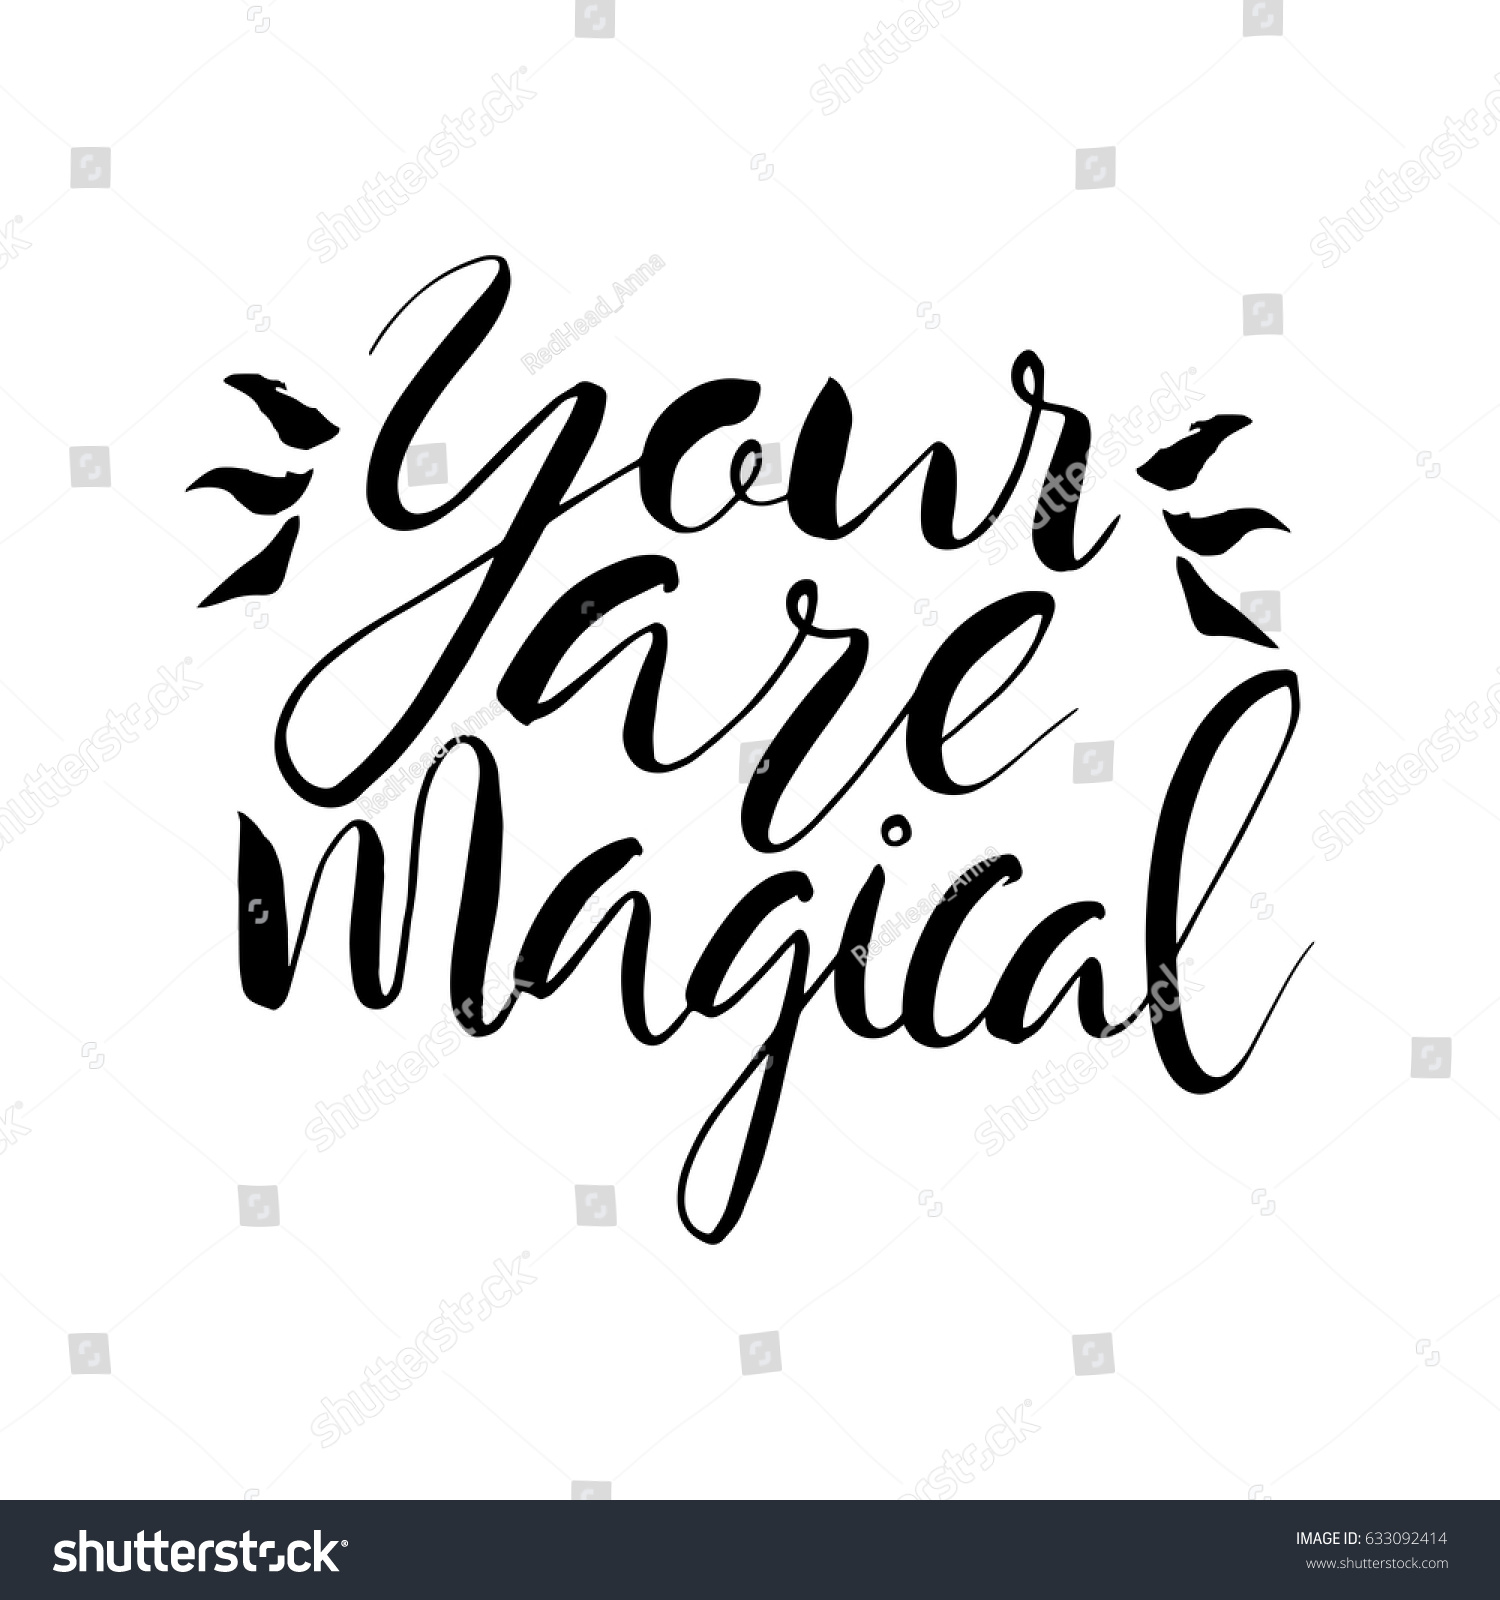 Magical Quotes Your Magical Textinspirational Motivational Quotes Hand Stock